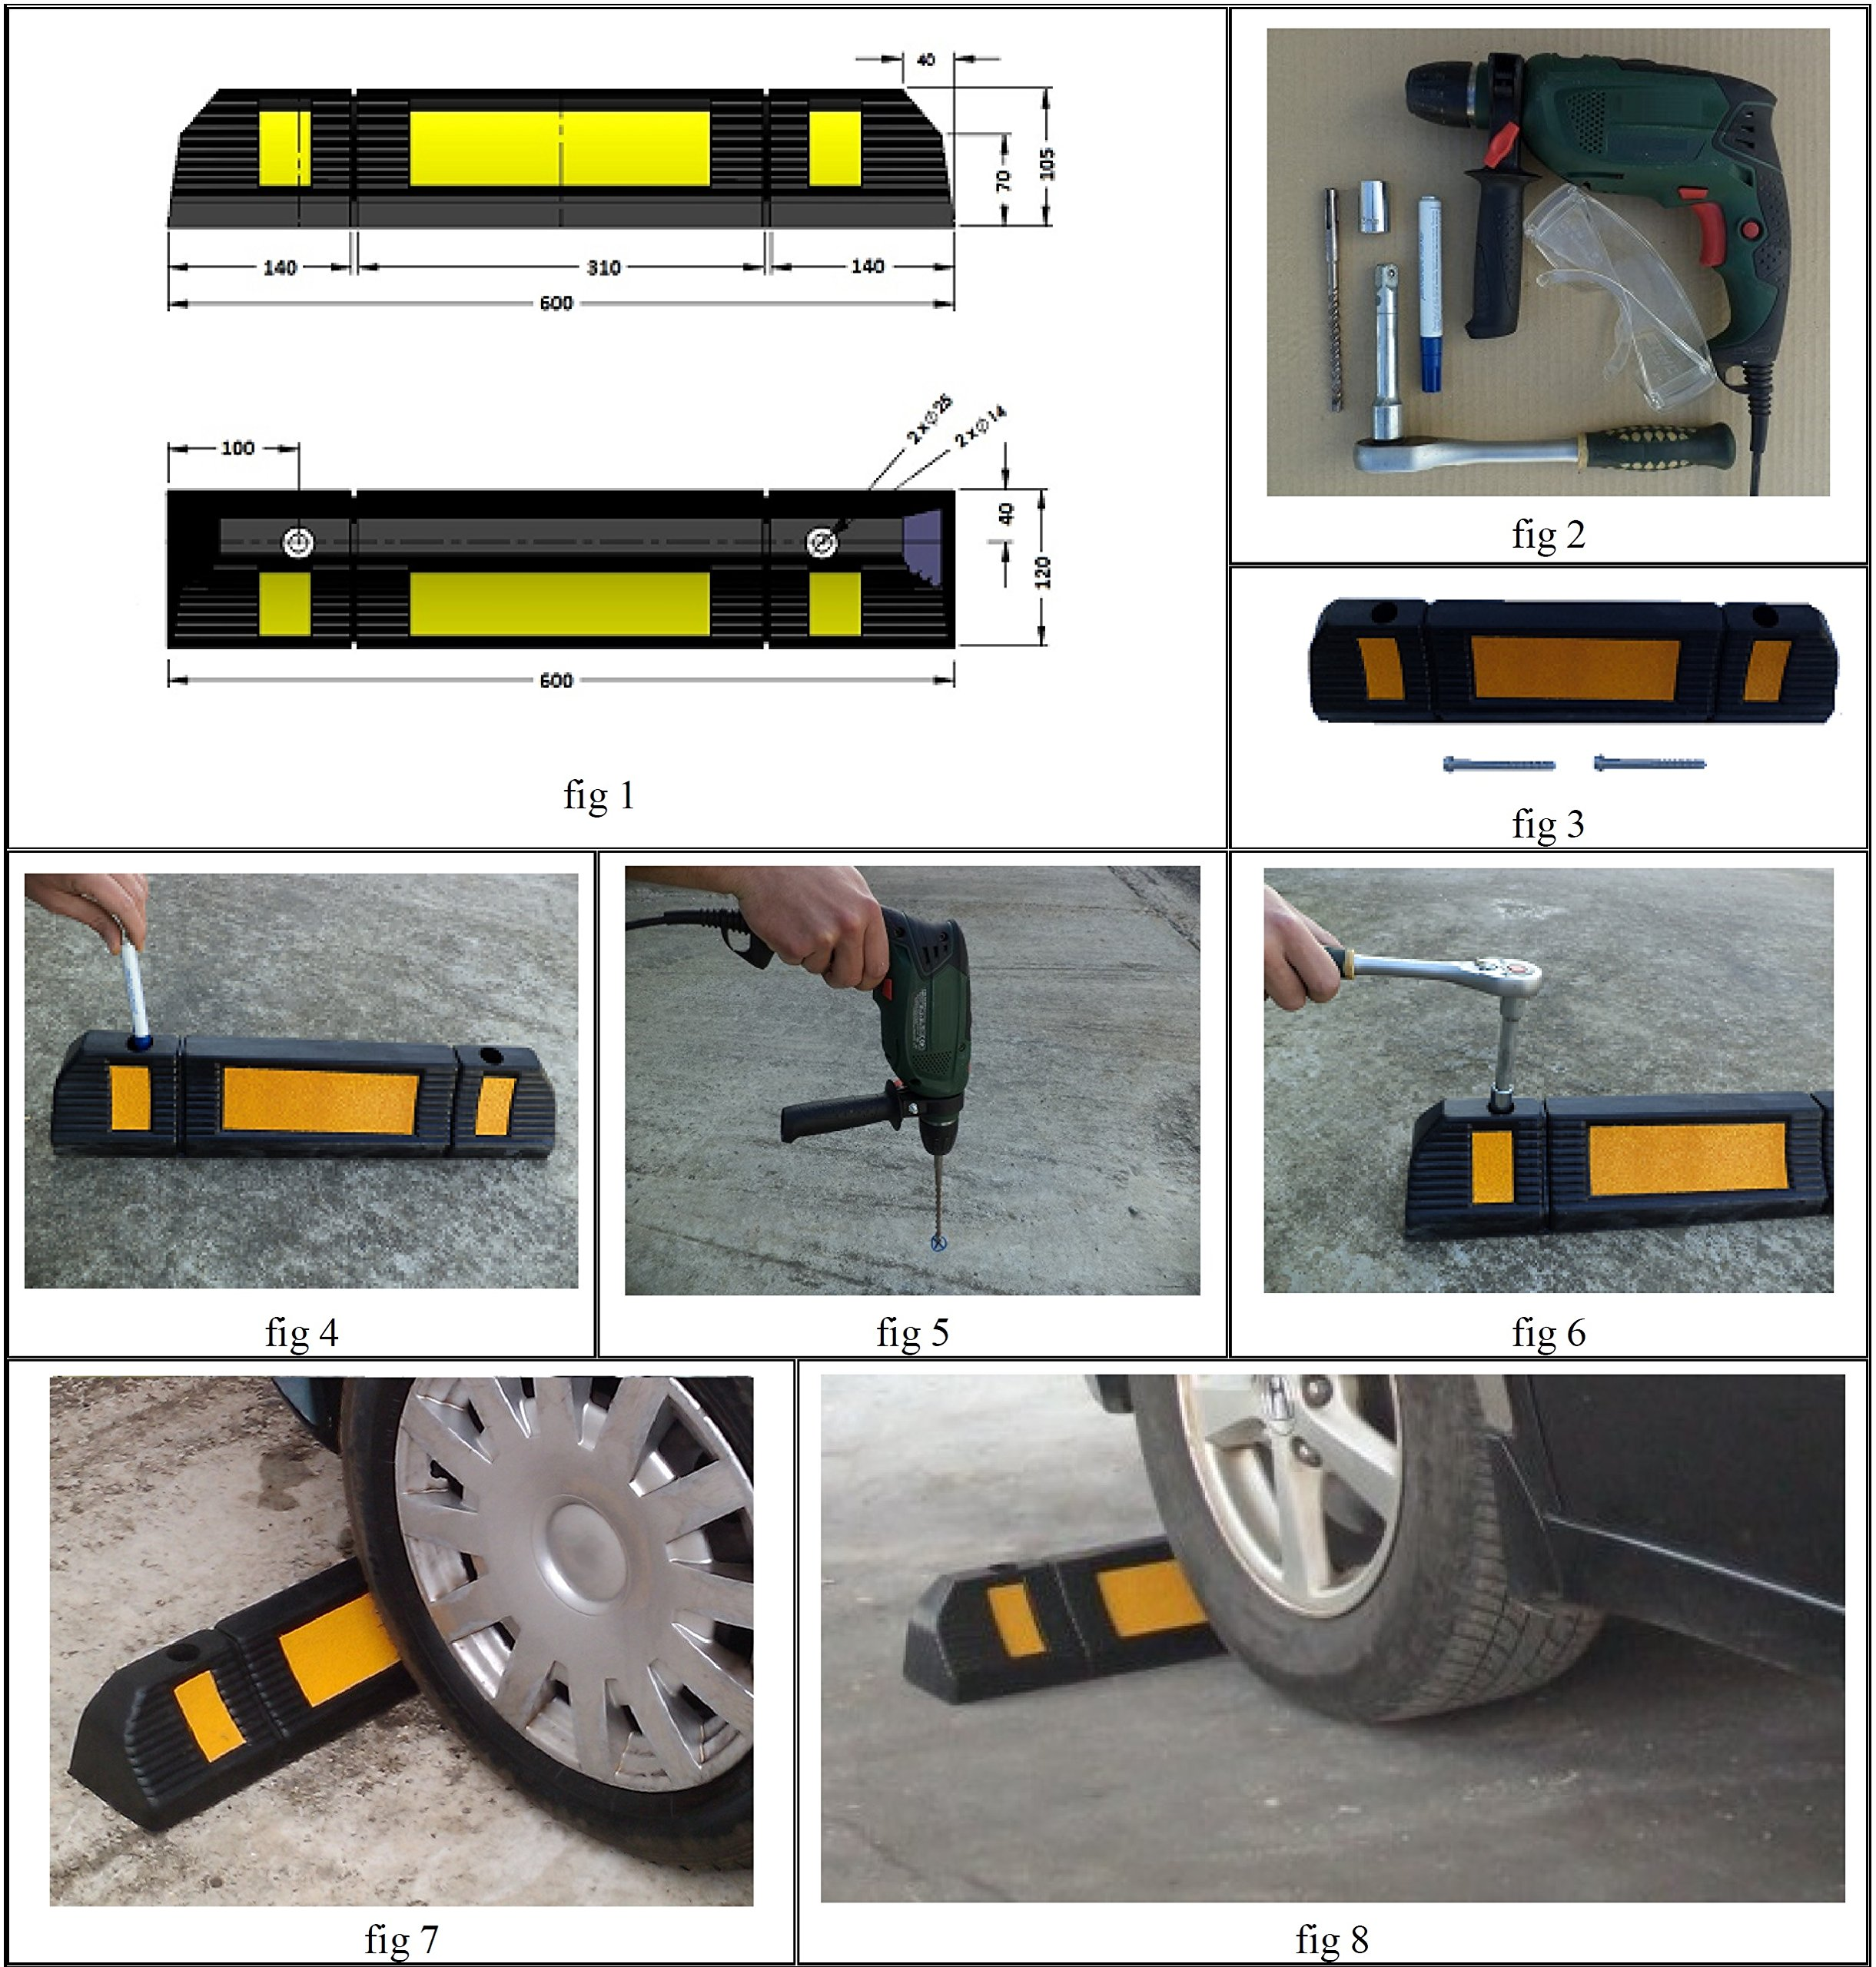 Parking Stopper for Garage Floor, Blocks Car Wheels as Parking Aid and Stops the Tires, acting as Rubber Parking Curbs that Protect Vehicle Bumpers and Garage Walls, 23.6''x4.7''x3.9'' (Pack of 2) by SNS SAFETY LTD (Image #7)